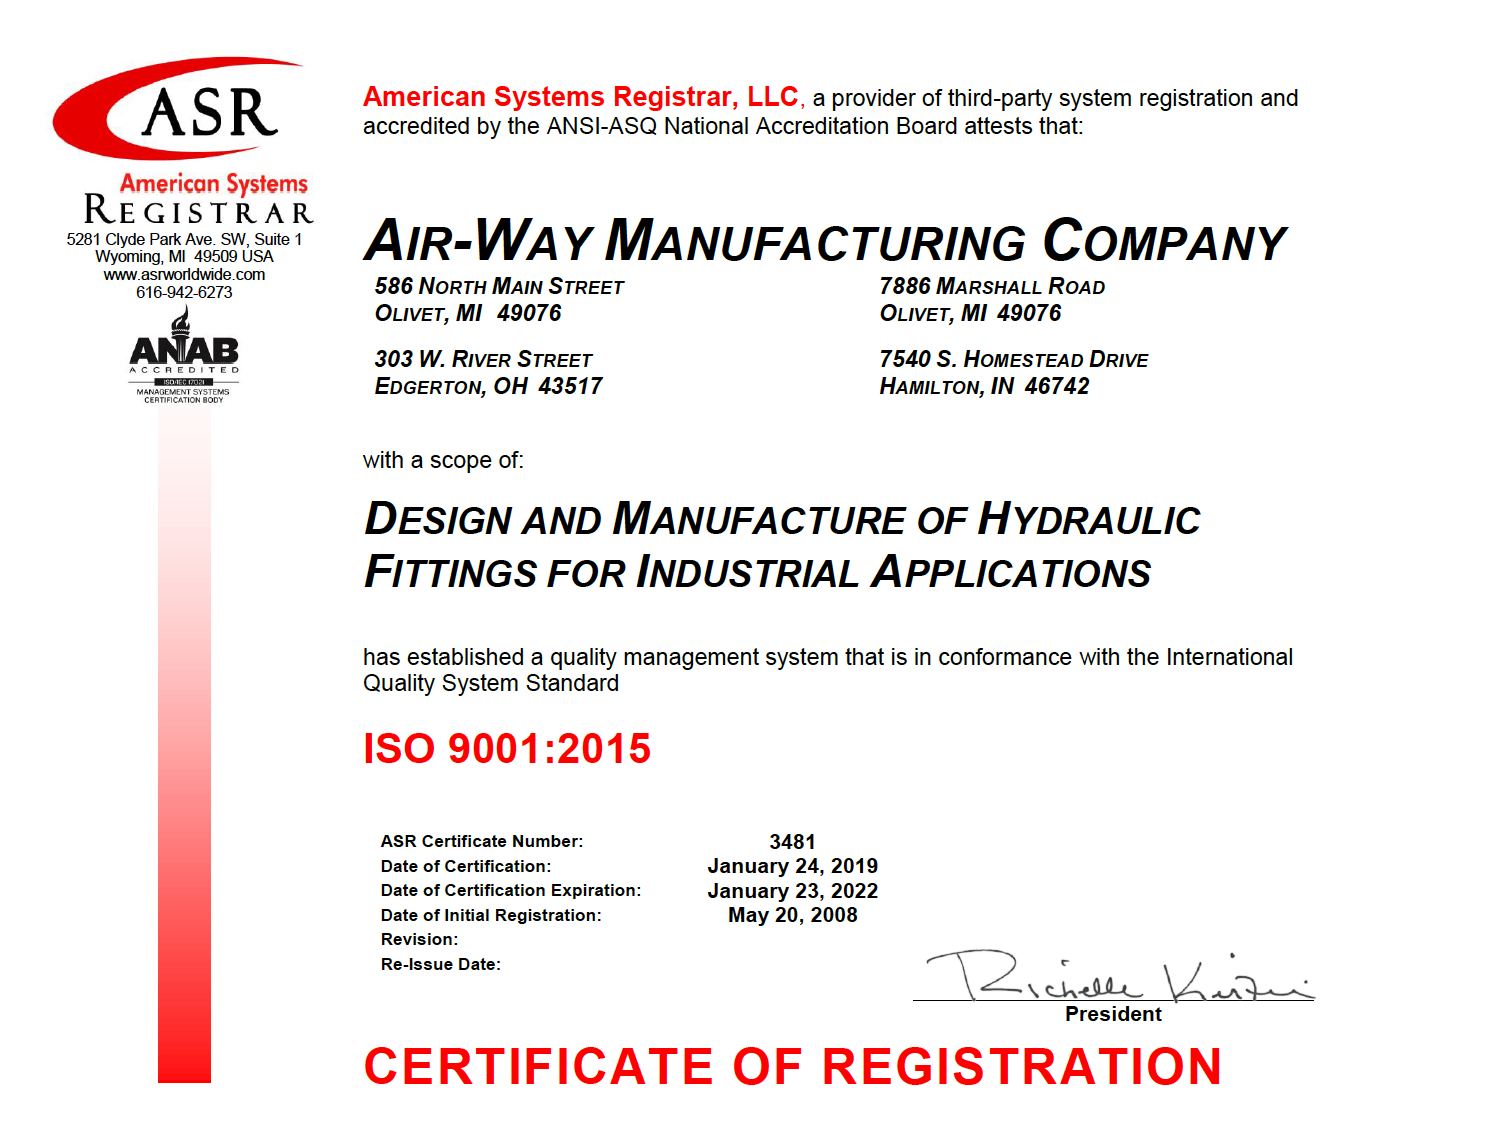 Air-Way Mfg ISO 9001 2015 Cert 1-24-19 to 2-23-22.png